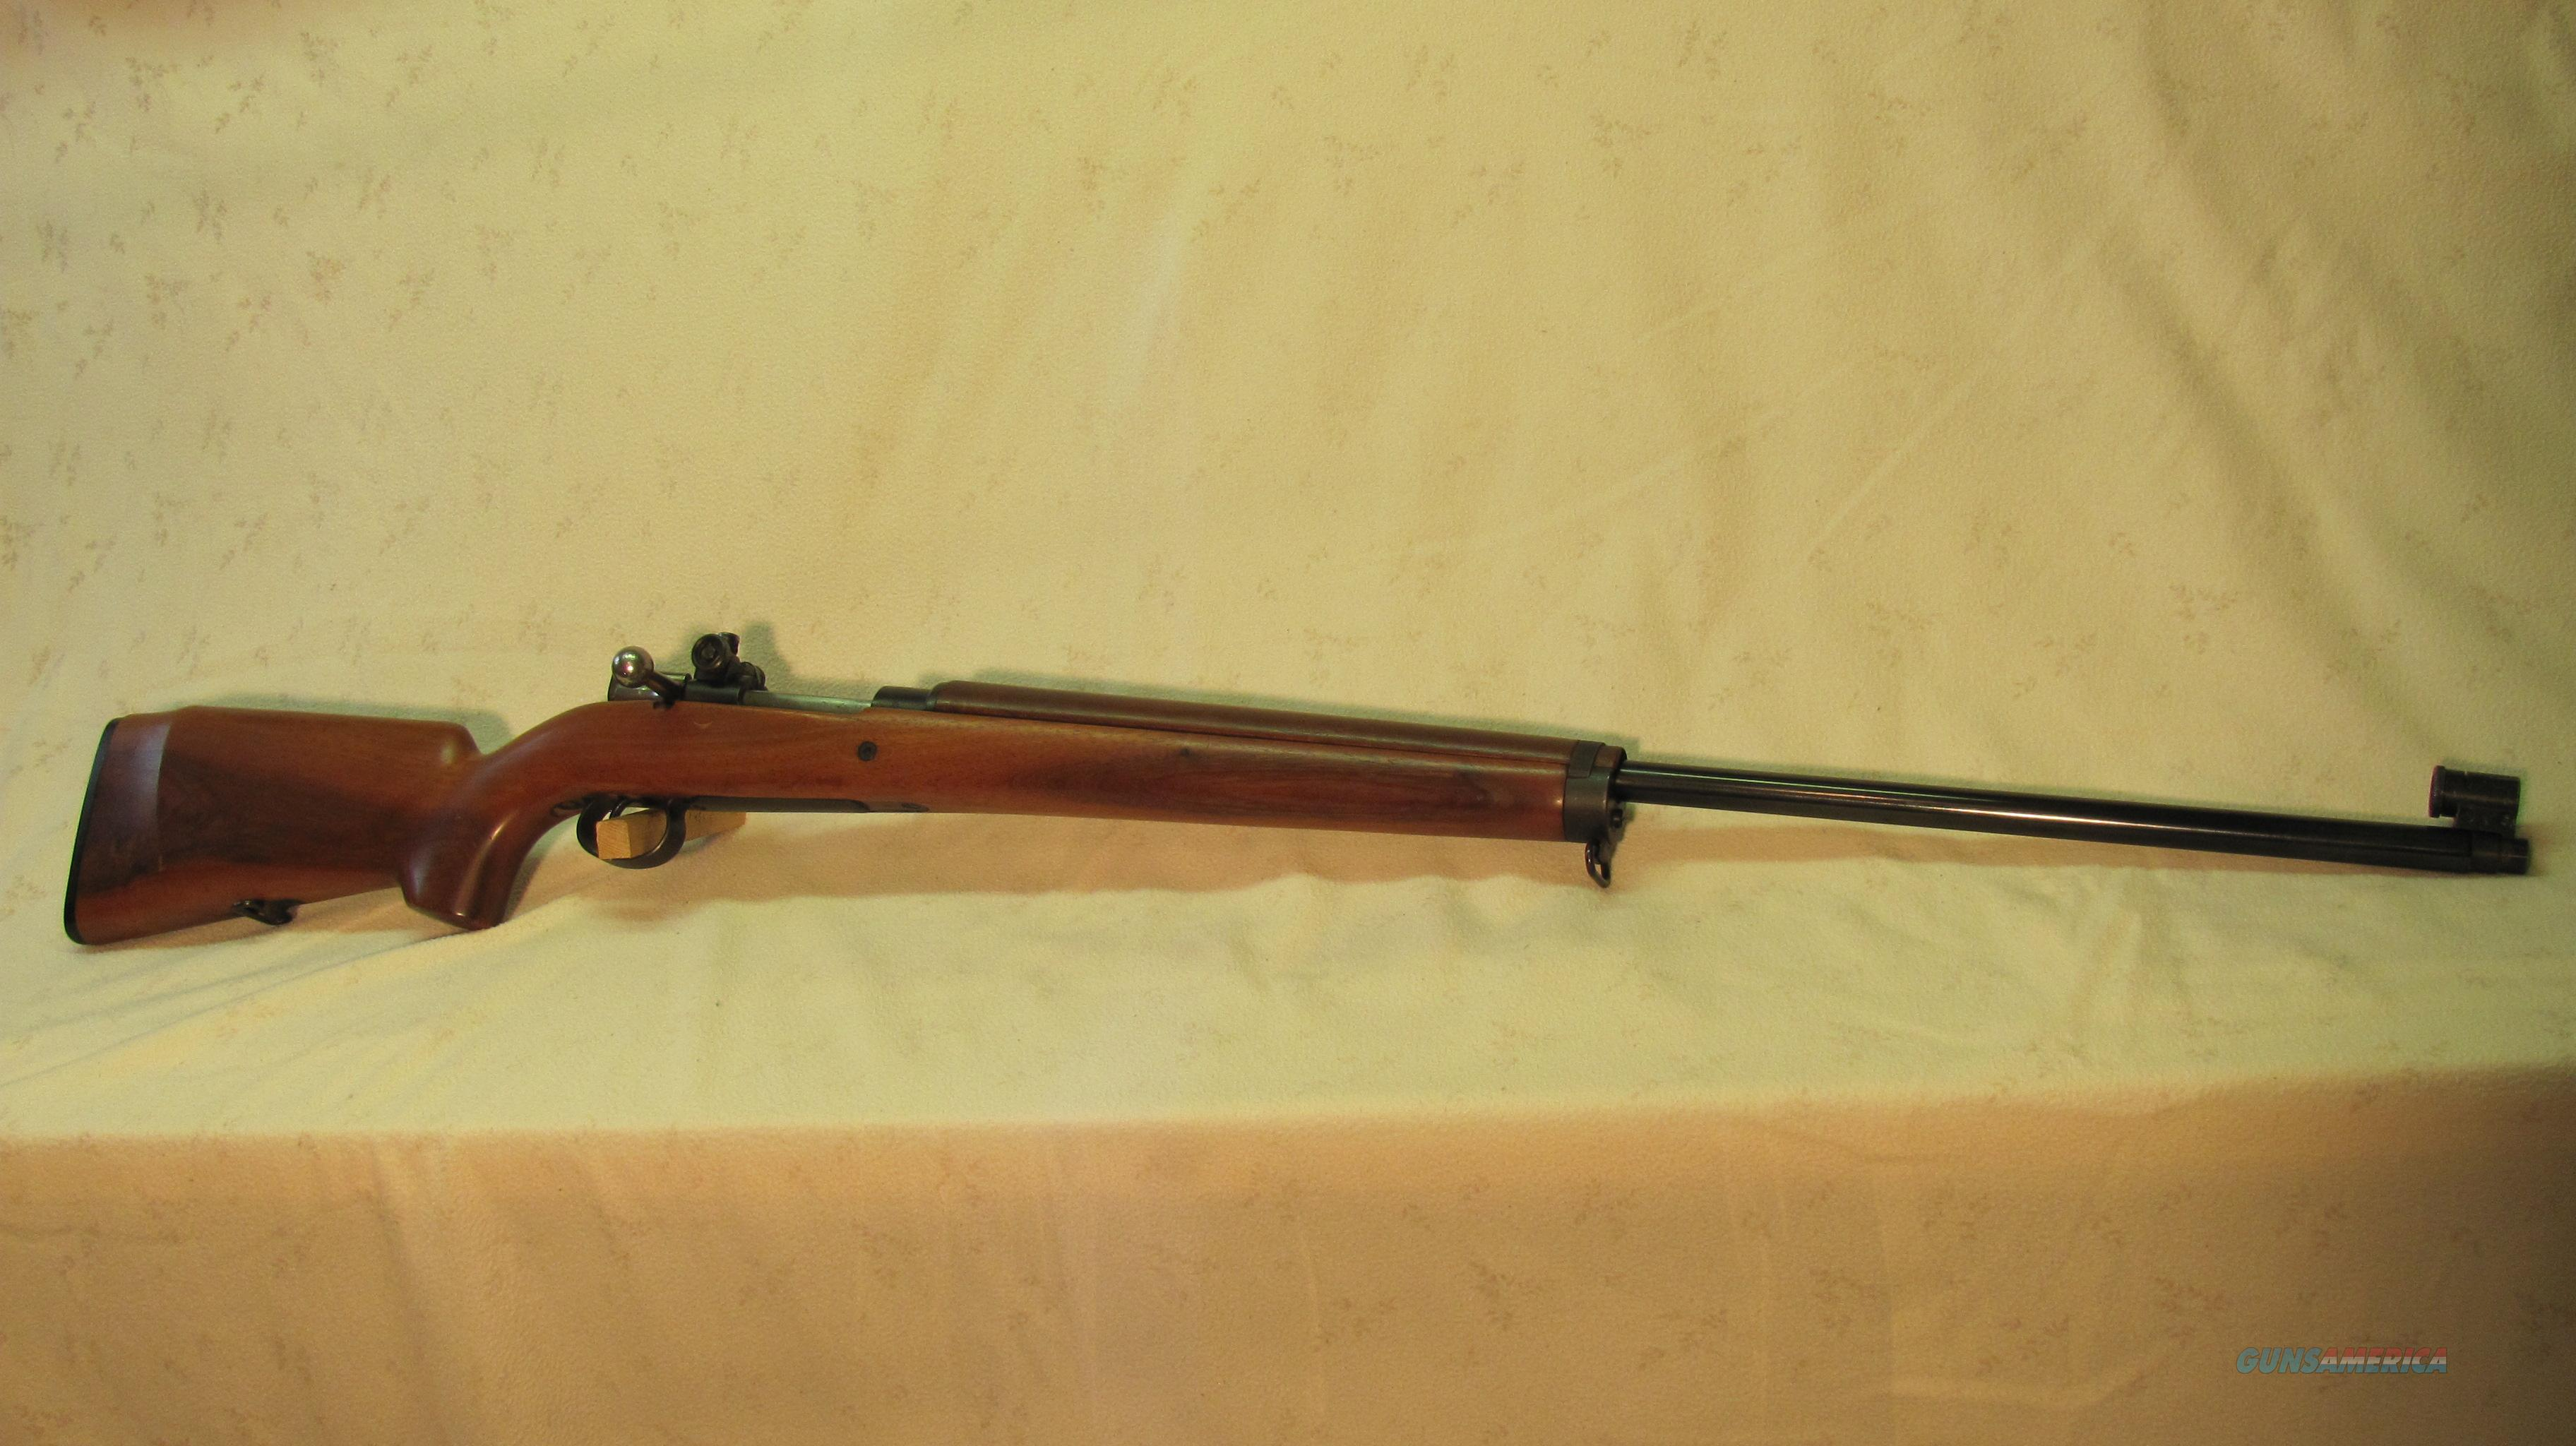 Model 96 Swede - CG-63 Rifle in 6.5x55 Caliber  Guns > Rifles > Military Misc. Rifles Non-US > Other